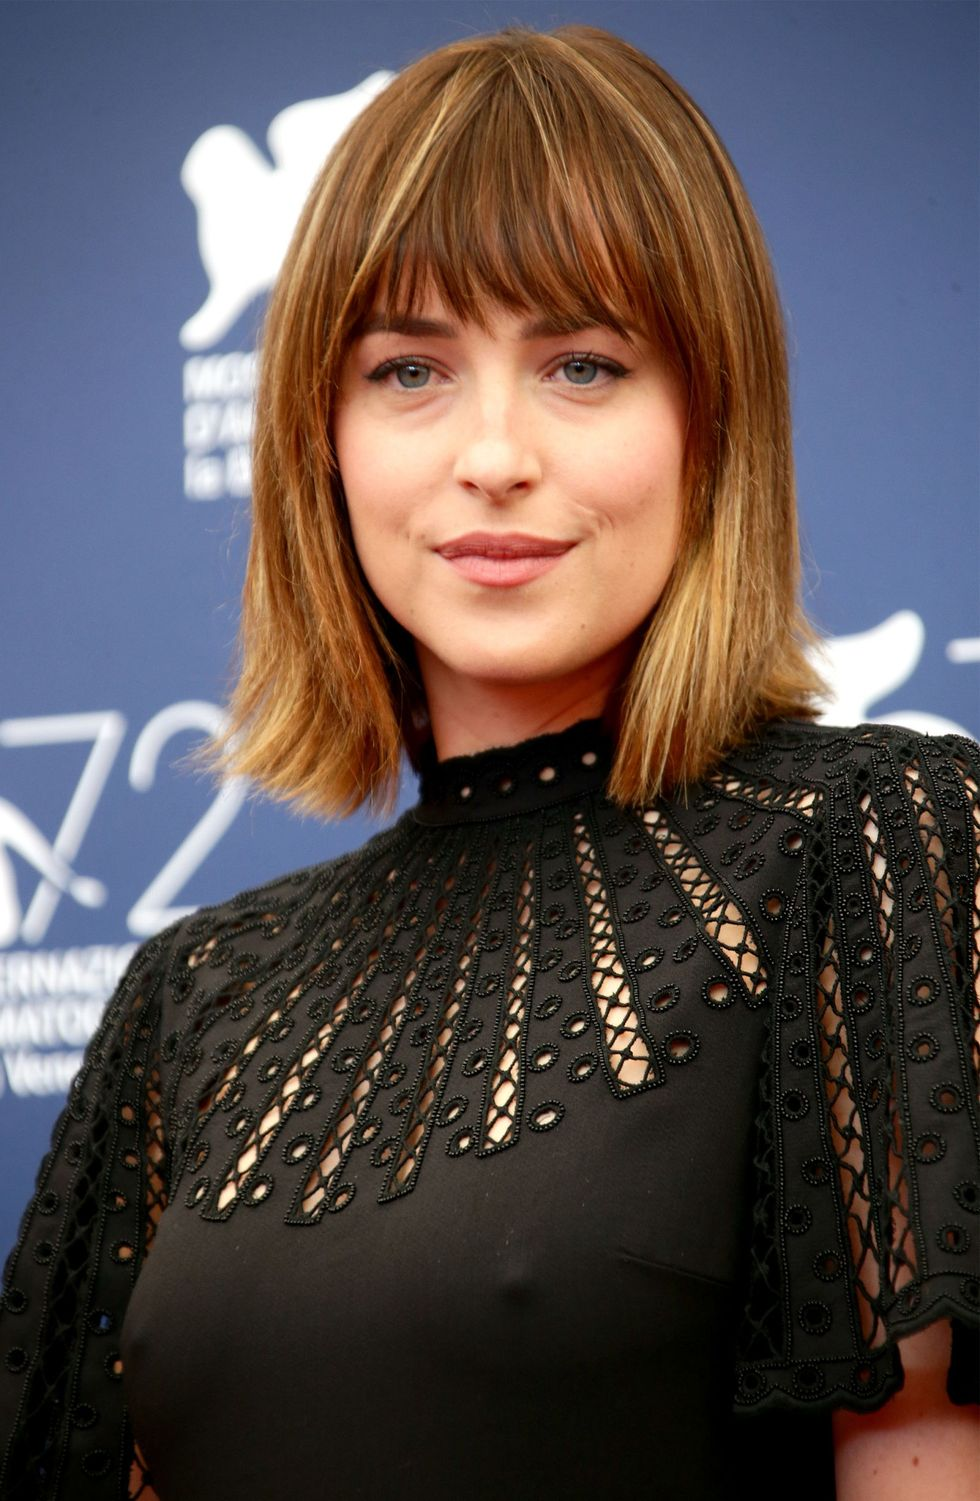 Dakota Johnson's Blonde Tips